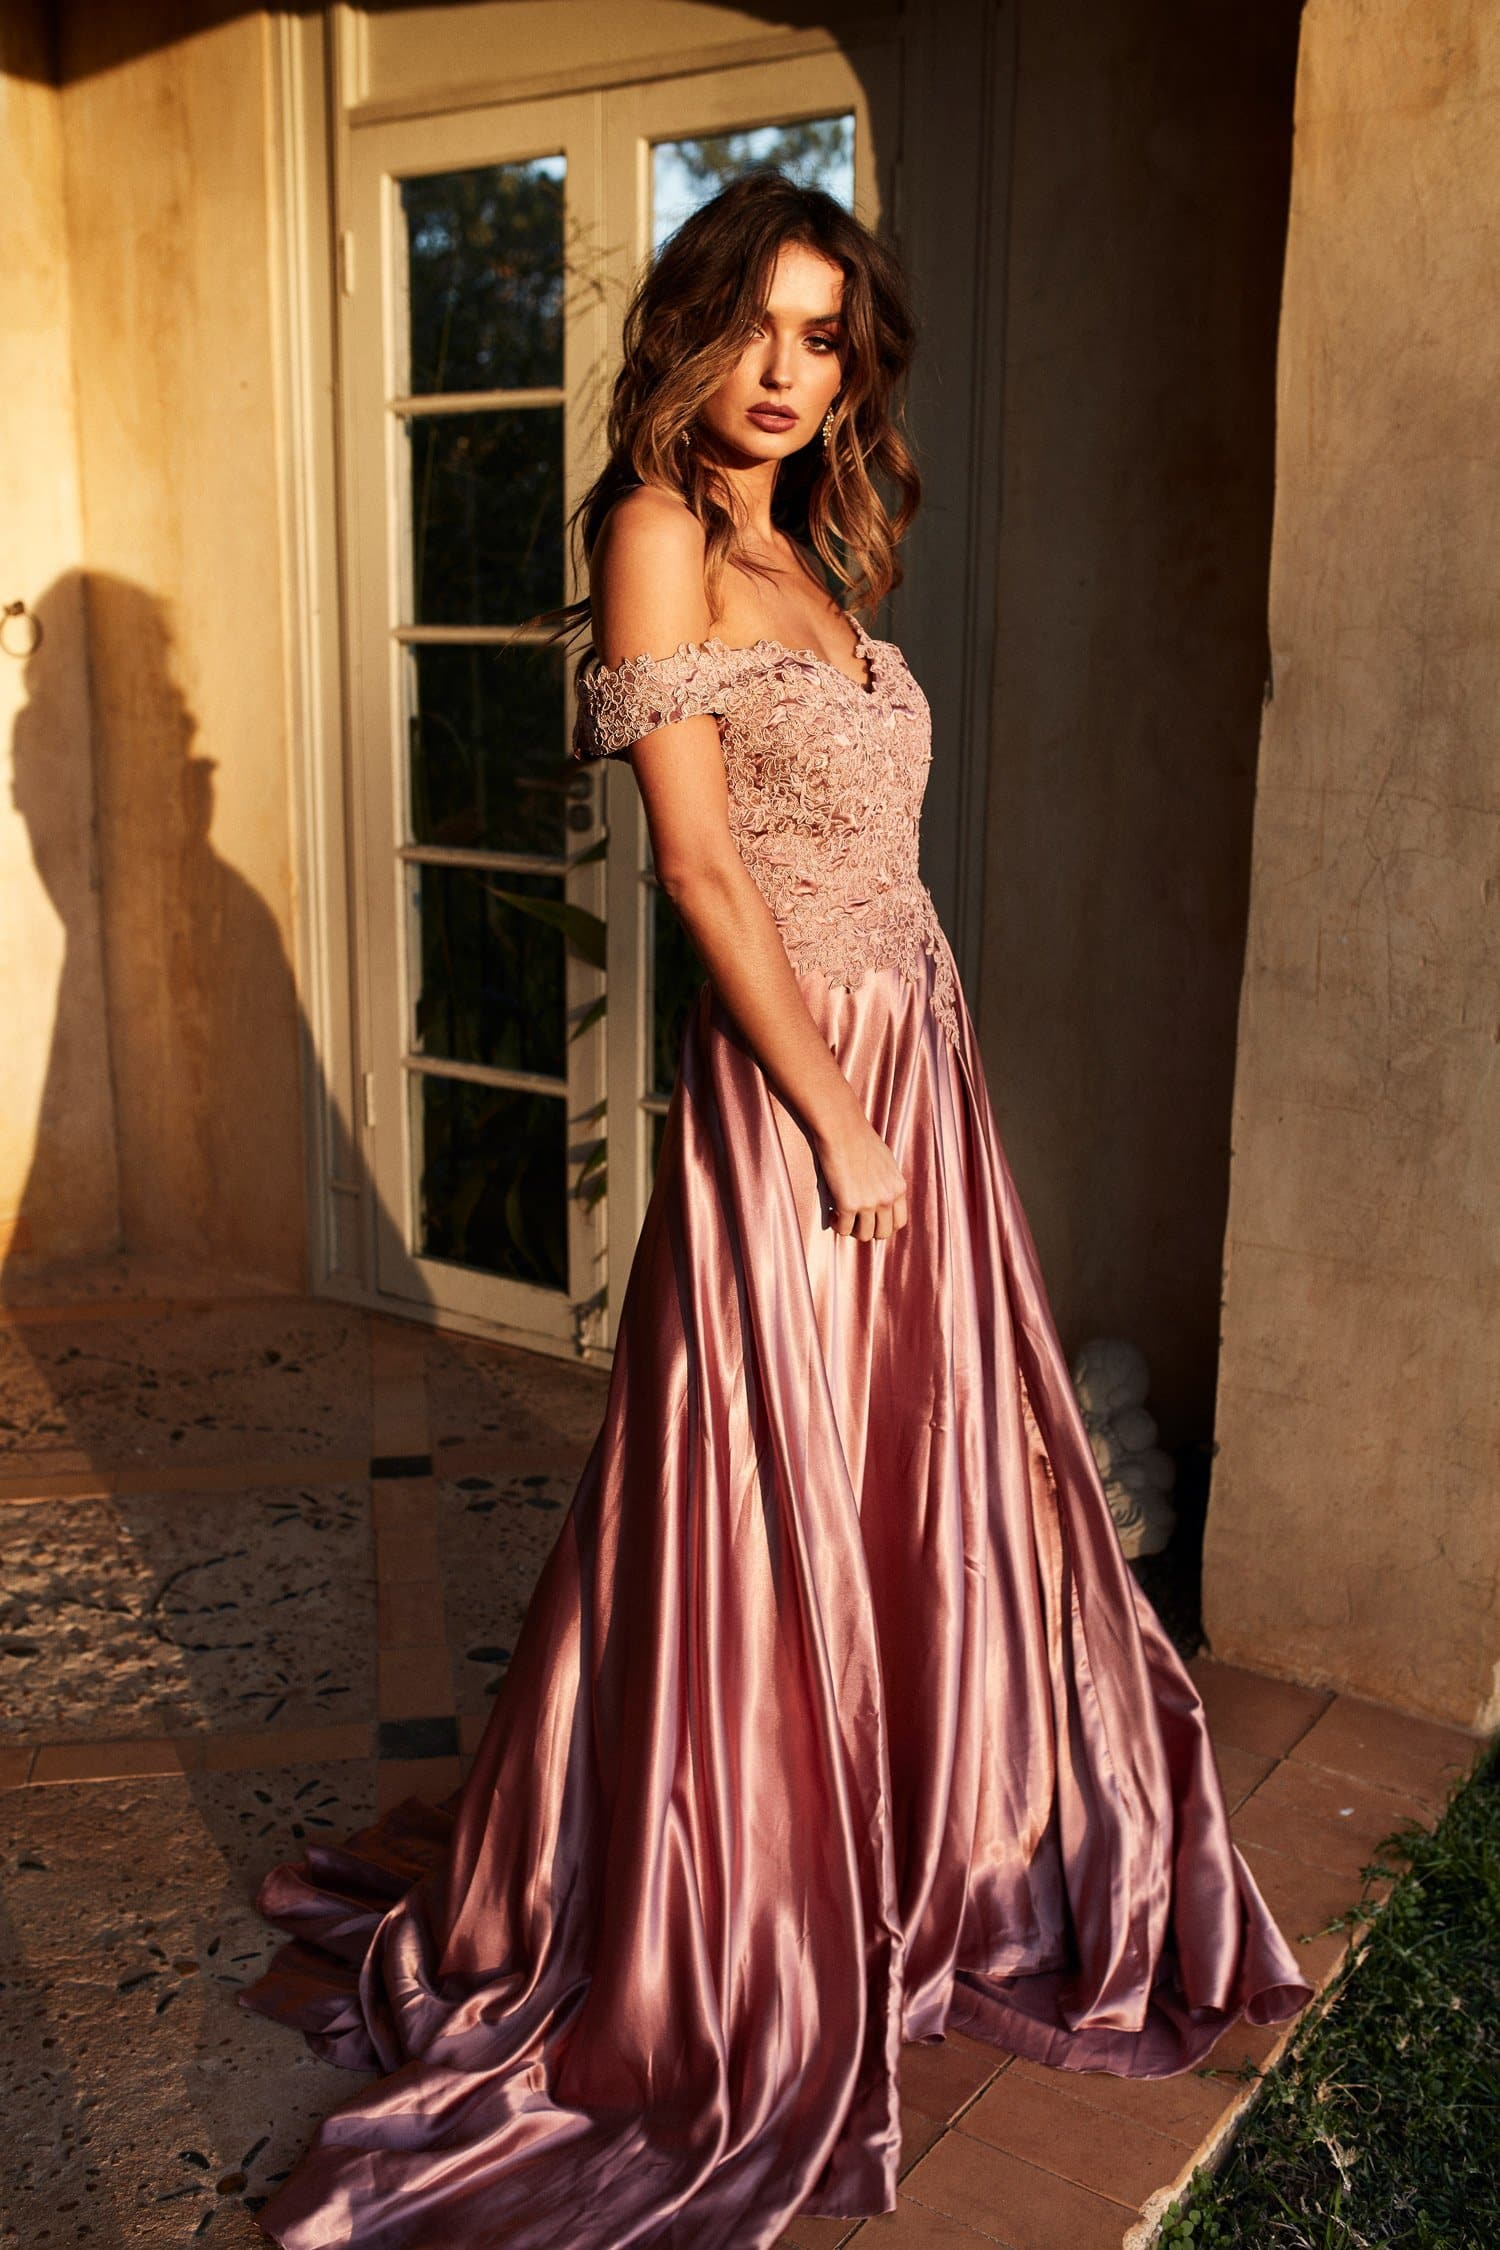 41882d5480c2 A&N Freya - Rose Gold Off Shoulder Gown Made From Lace & Satin – A&N ...